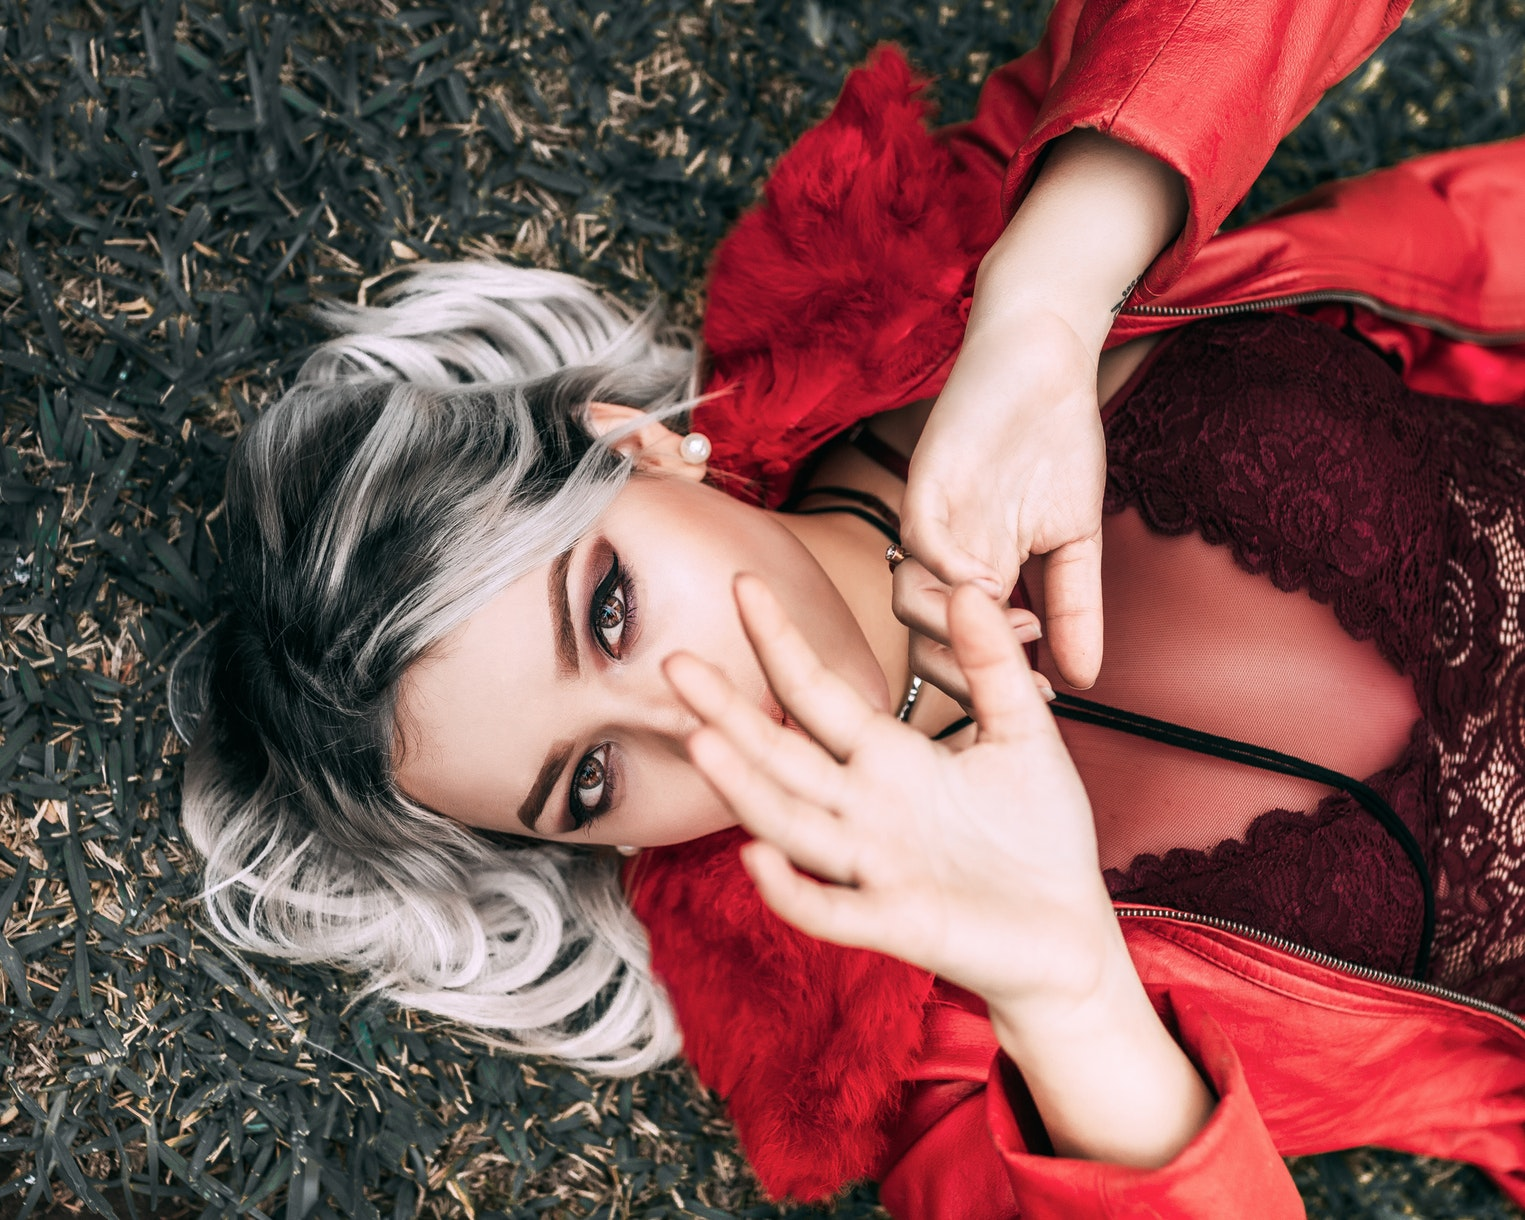 girl with silver hair lays on the grass